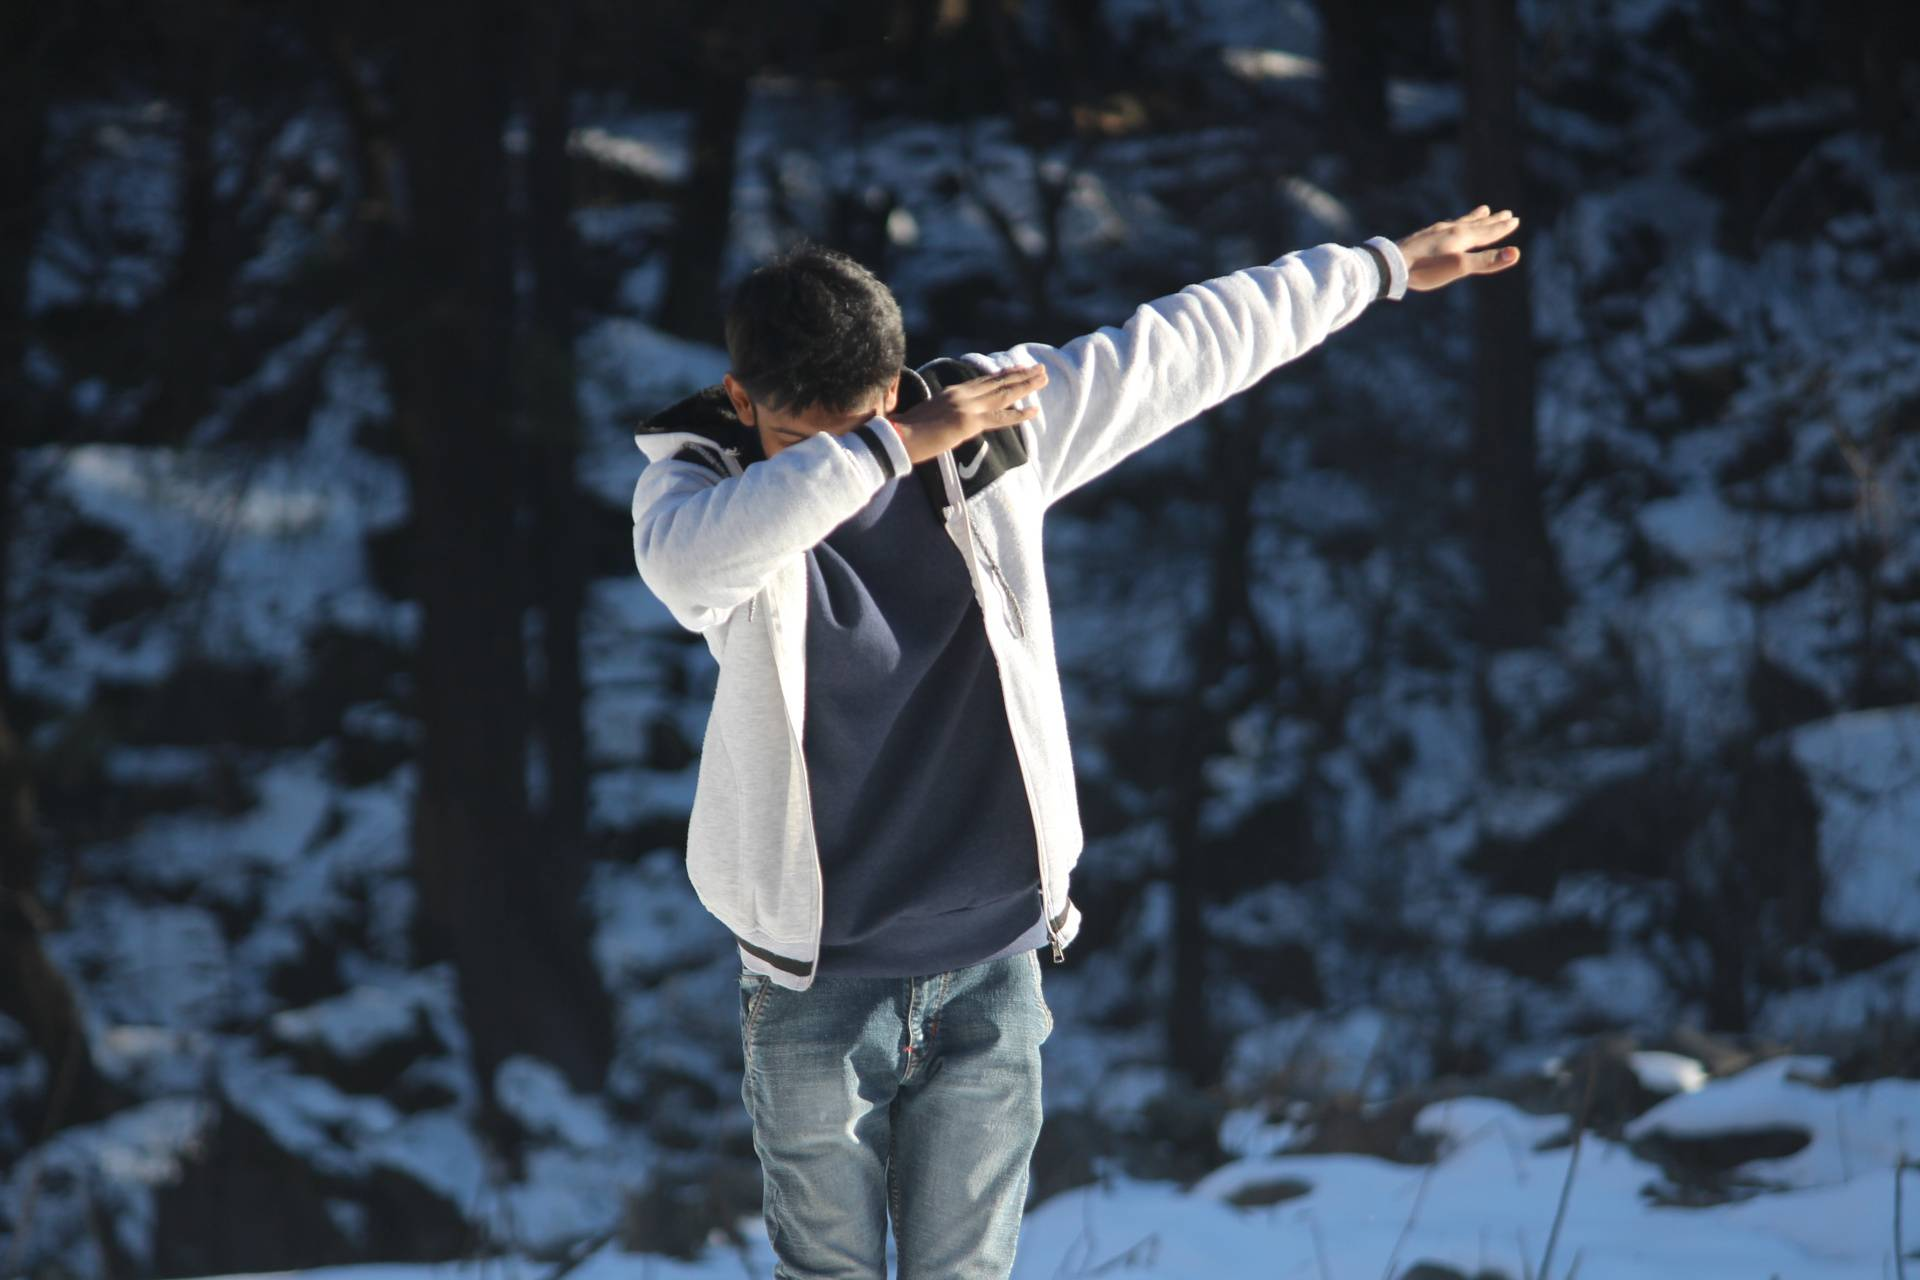 Dab in snow